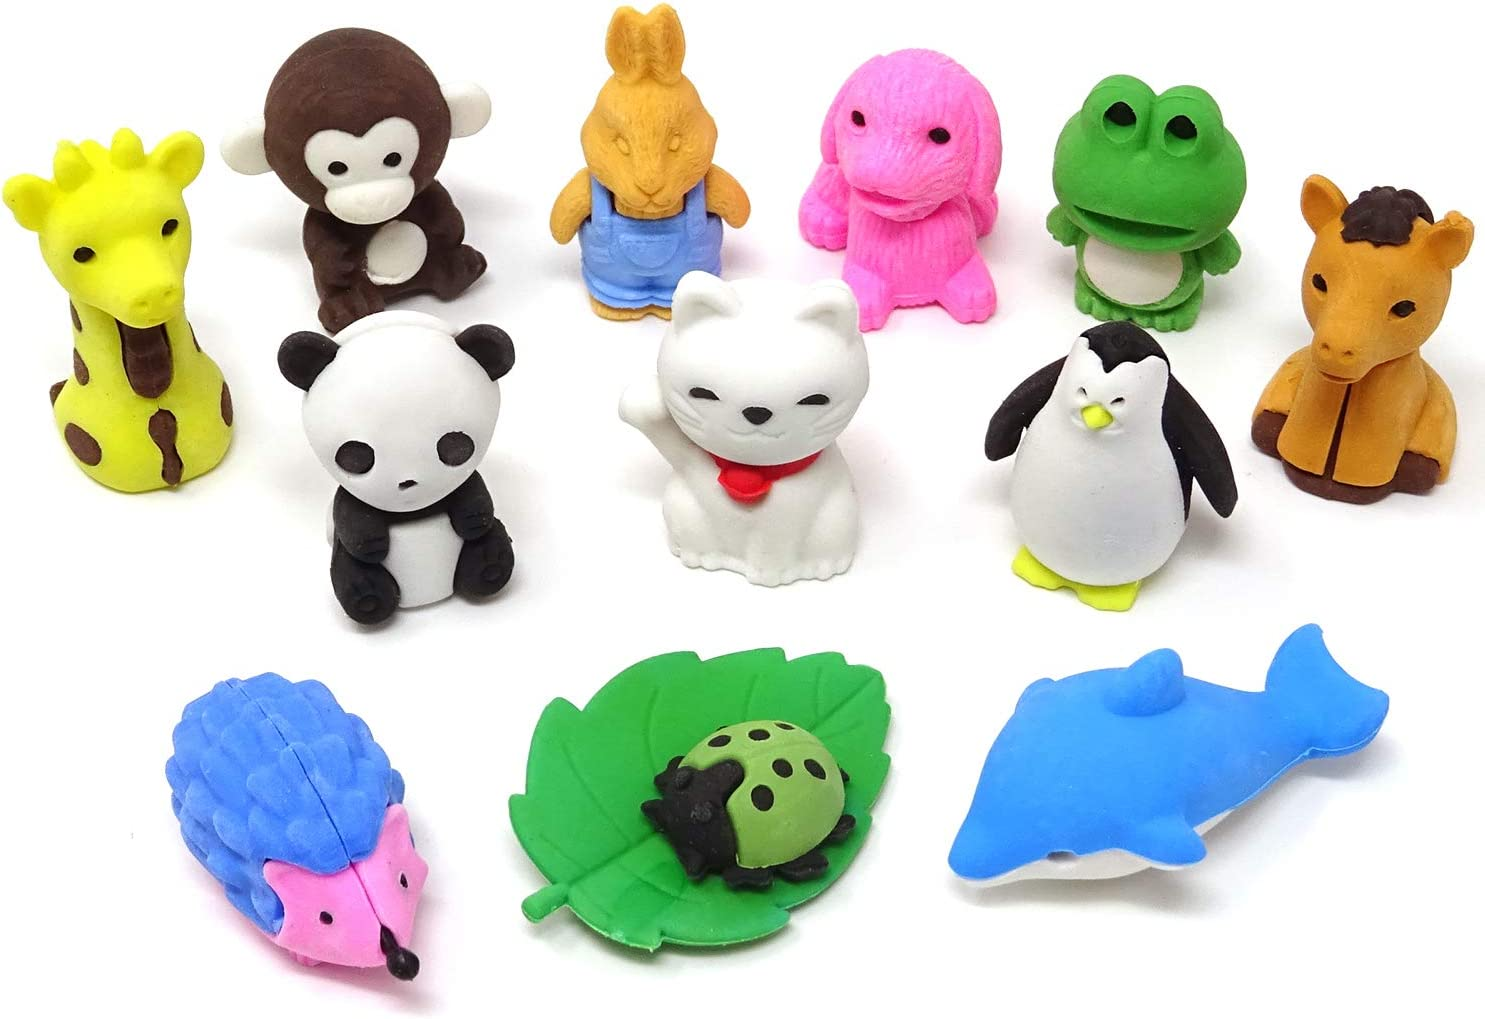 HONBAY 12PCS 3D Zoo Animal Pencil Erasers for Home Office and School Color Random